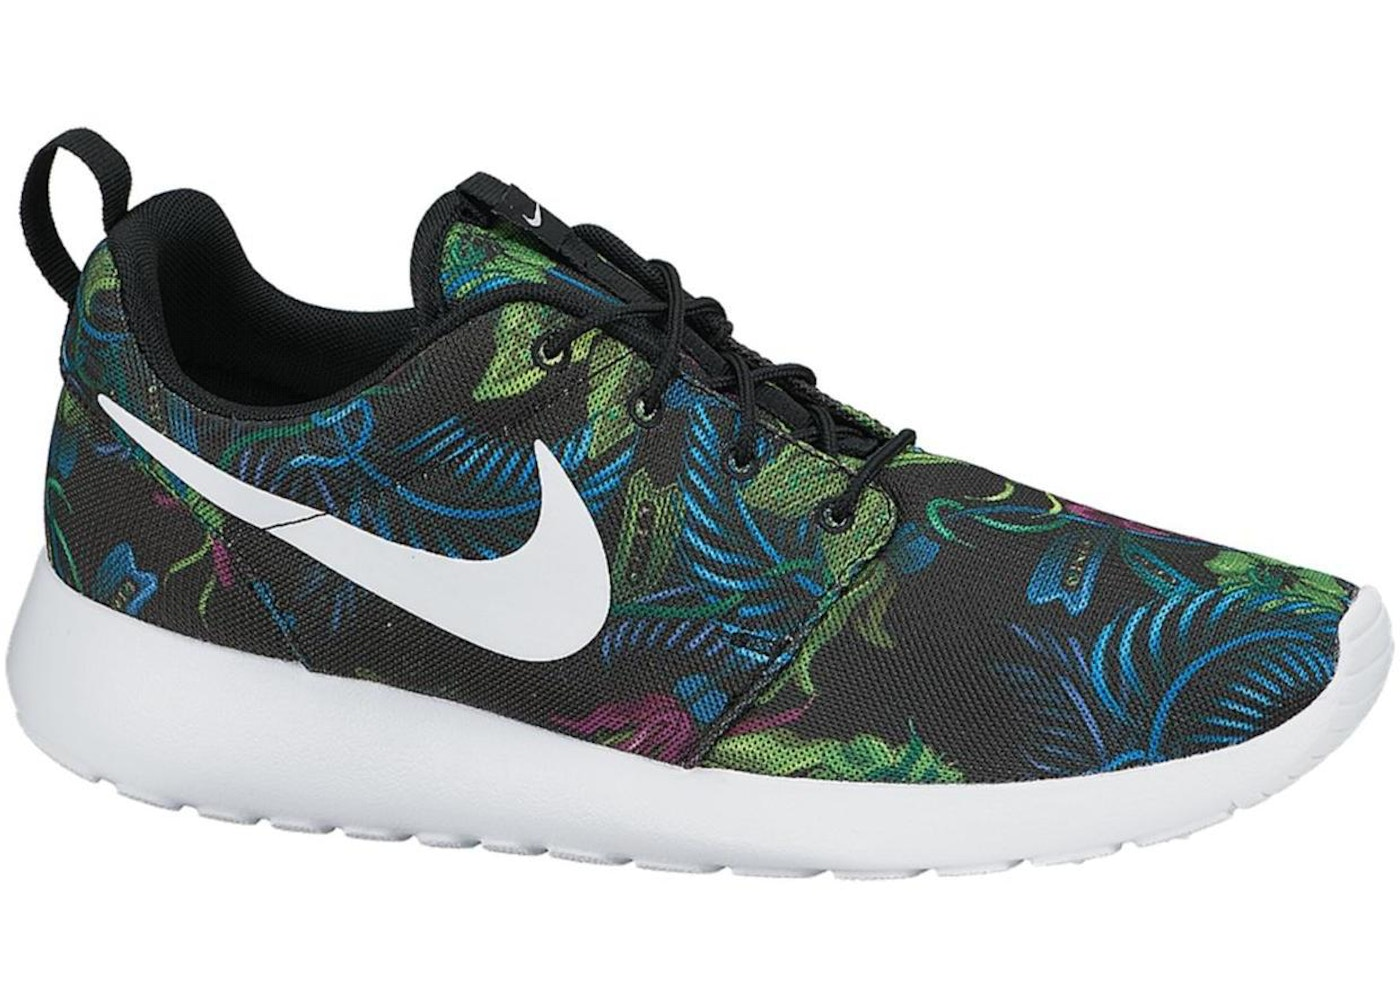 new arrival 61f6b 9a638 Sell. or Ask. Size  11. View All Bids. Nike Roshe Run Floral ...